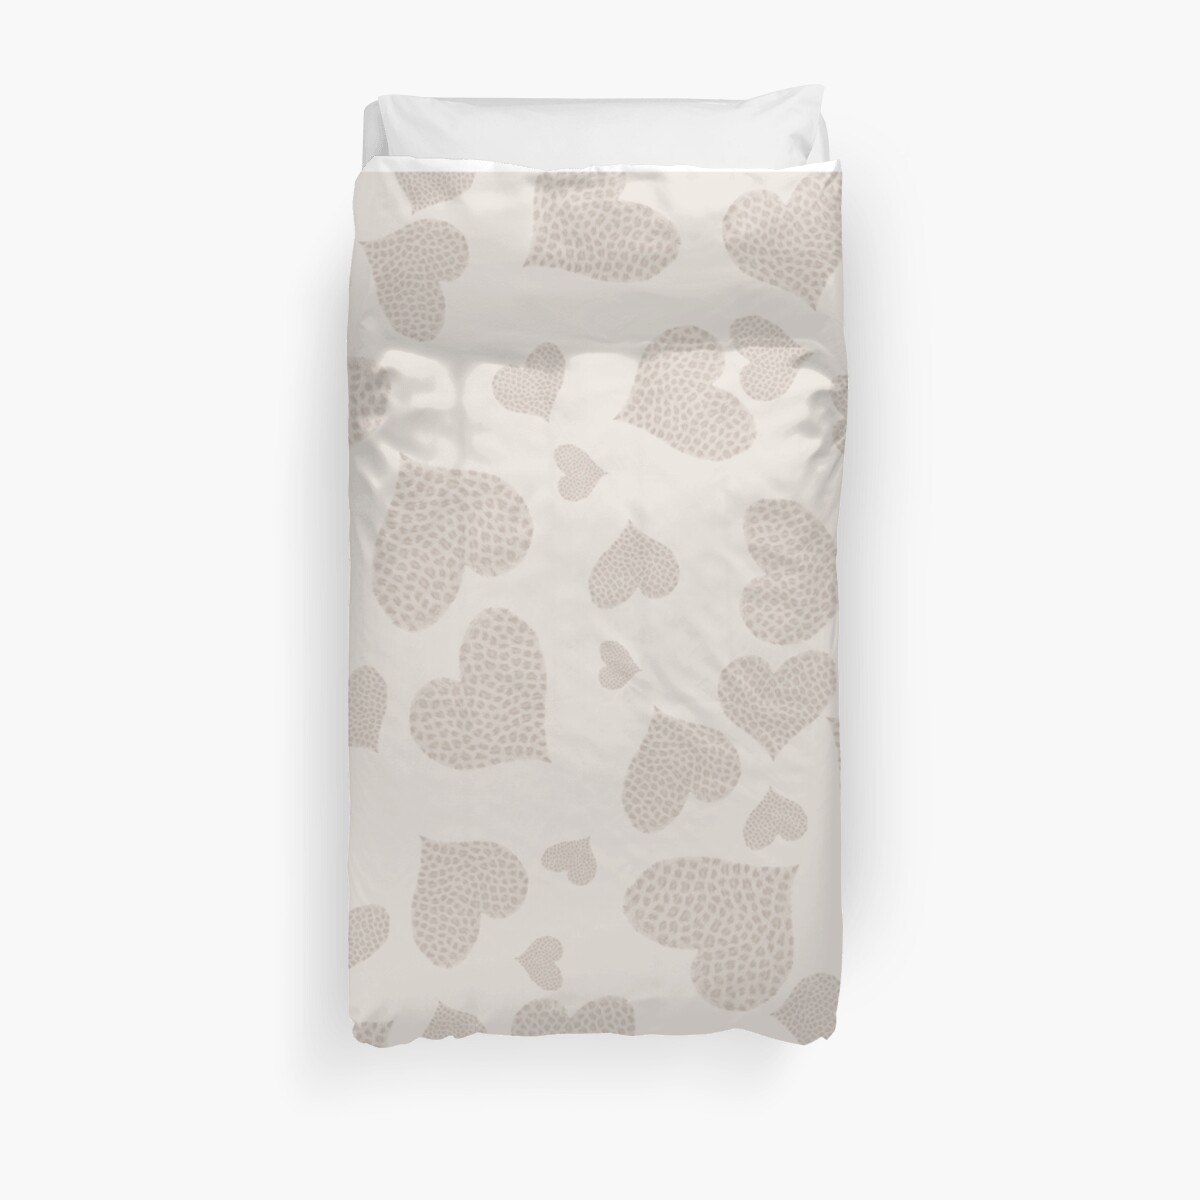 Heart Small Cheetah Print Girly Shirt, Print, Poster, iPhone Case, Samsung Case, iPad Case, Home Decor, Throw Pillows, Totes by Lallinda